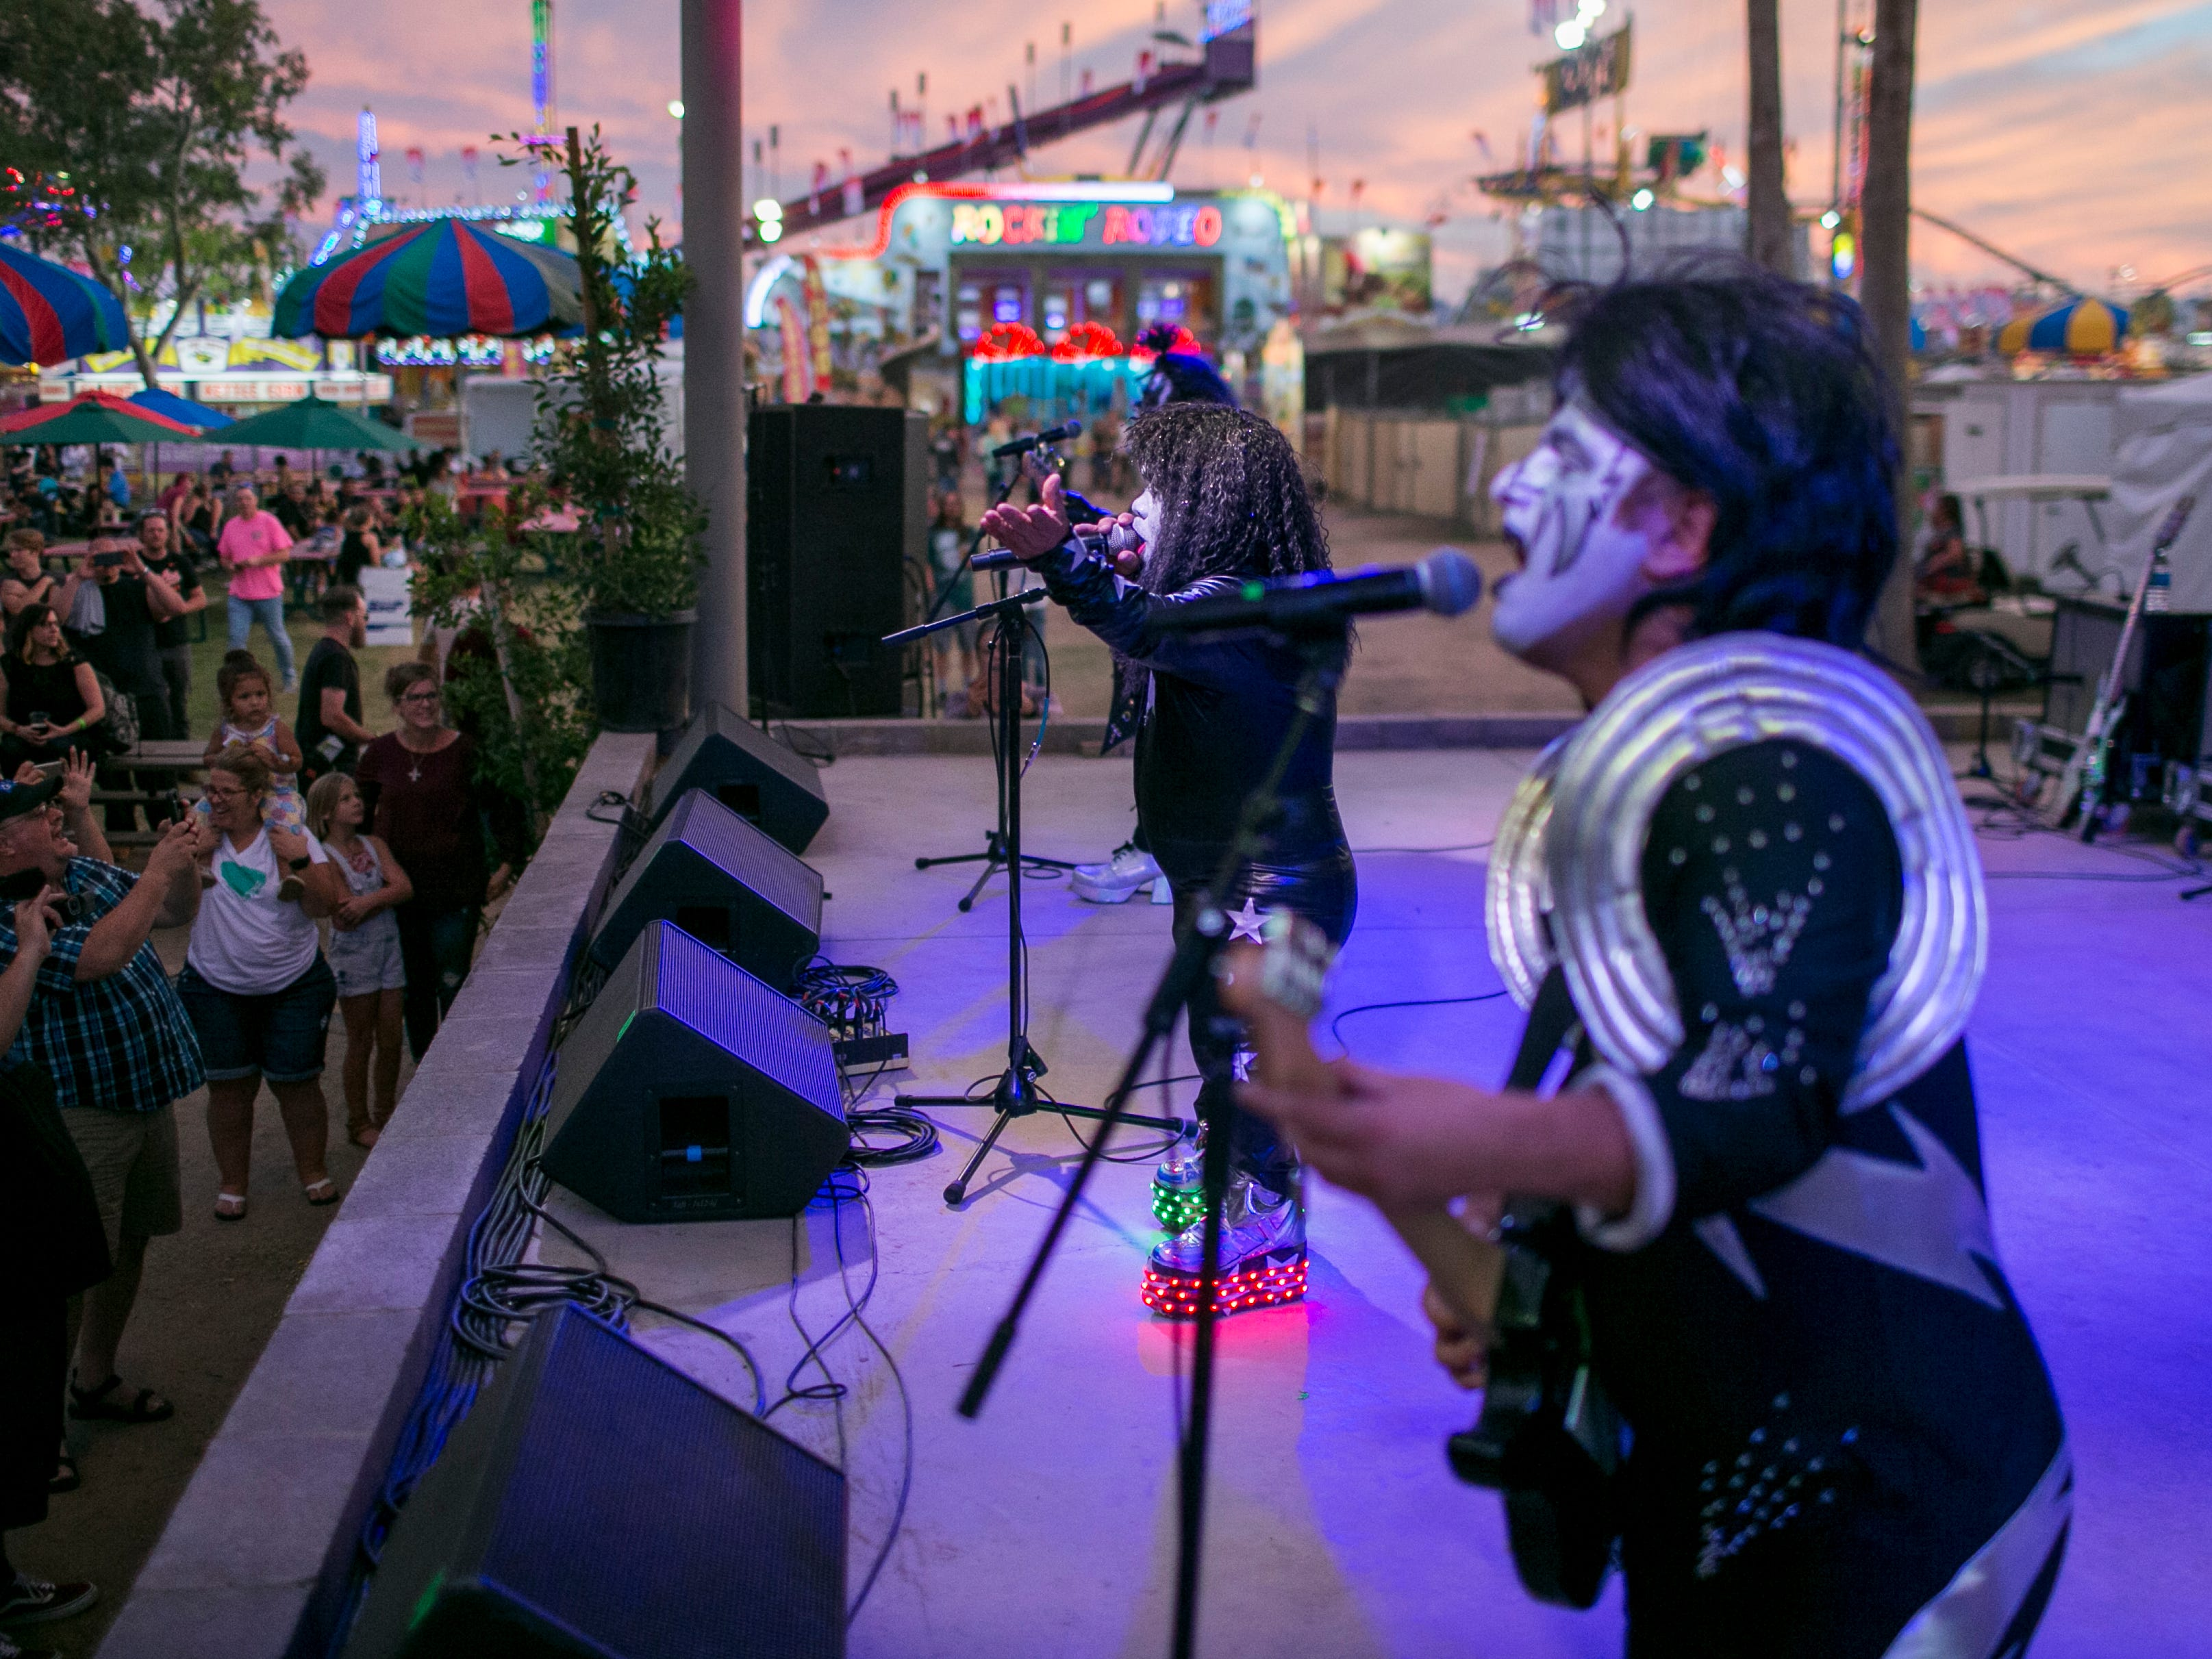 Mini Kiss performs on stage at the Arizona State Fair in Phoenix on Saturday, Oct. 6, 2018.